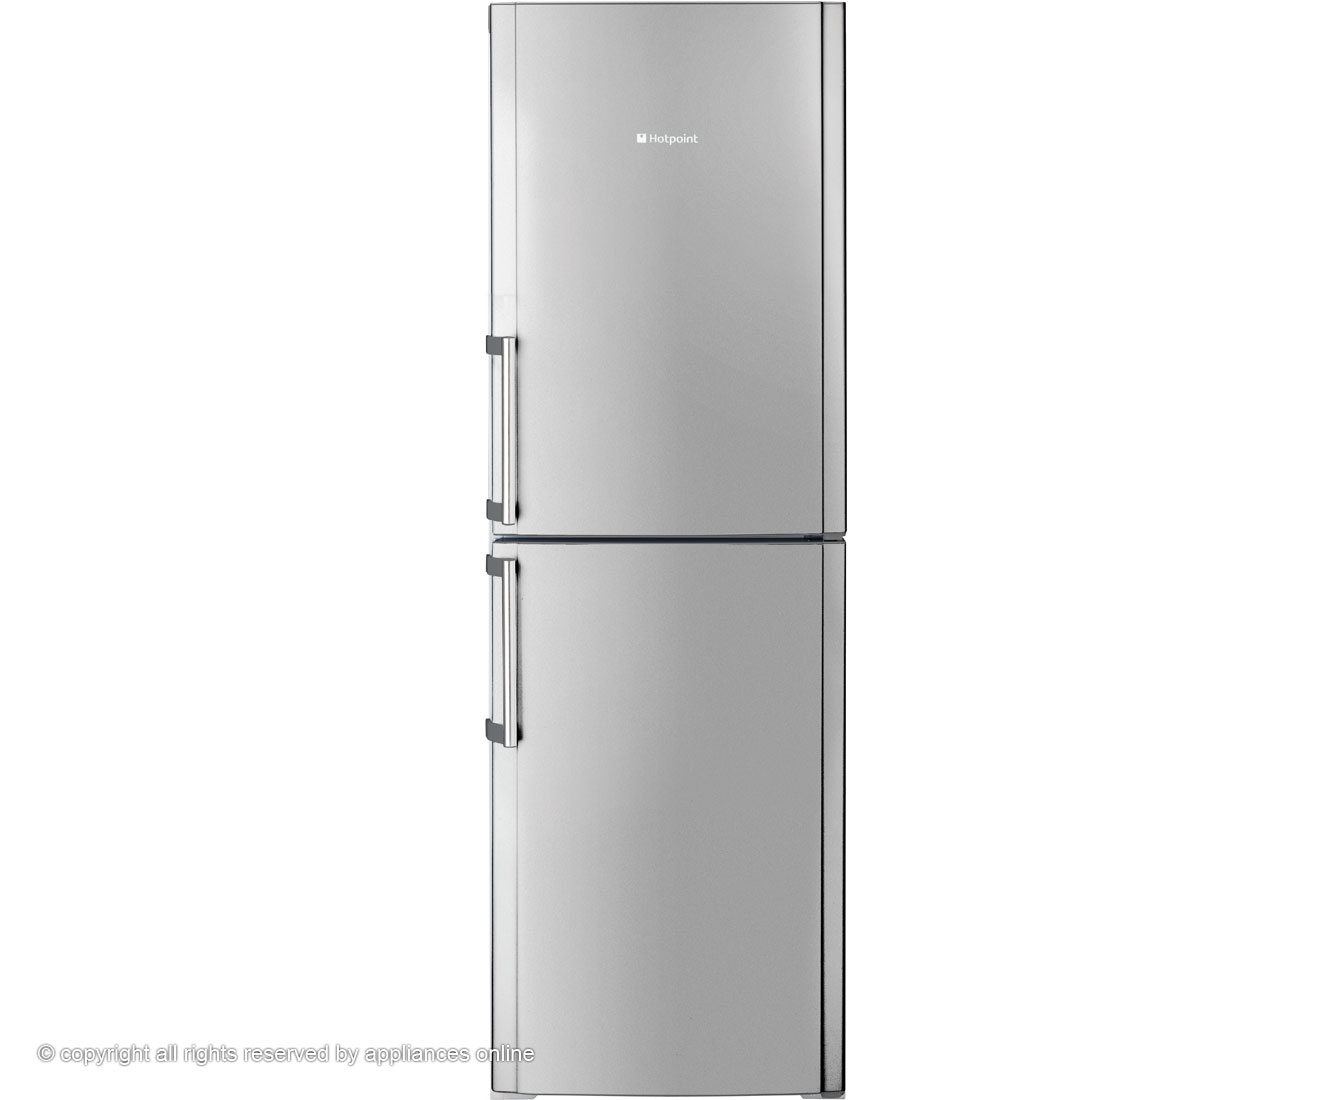 Hotpoint Ultima FFFL1810G 50/50 Frost Free Fridge Freezer - Graphite